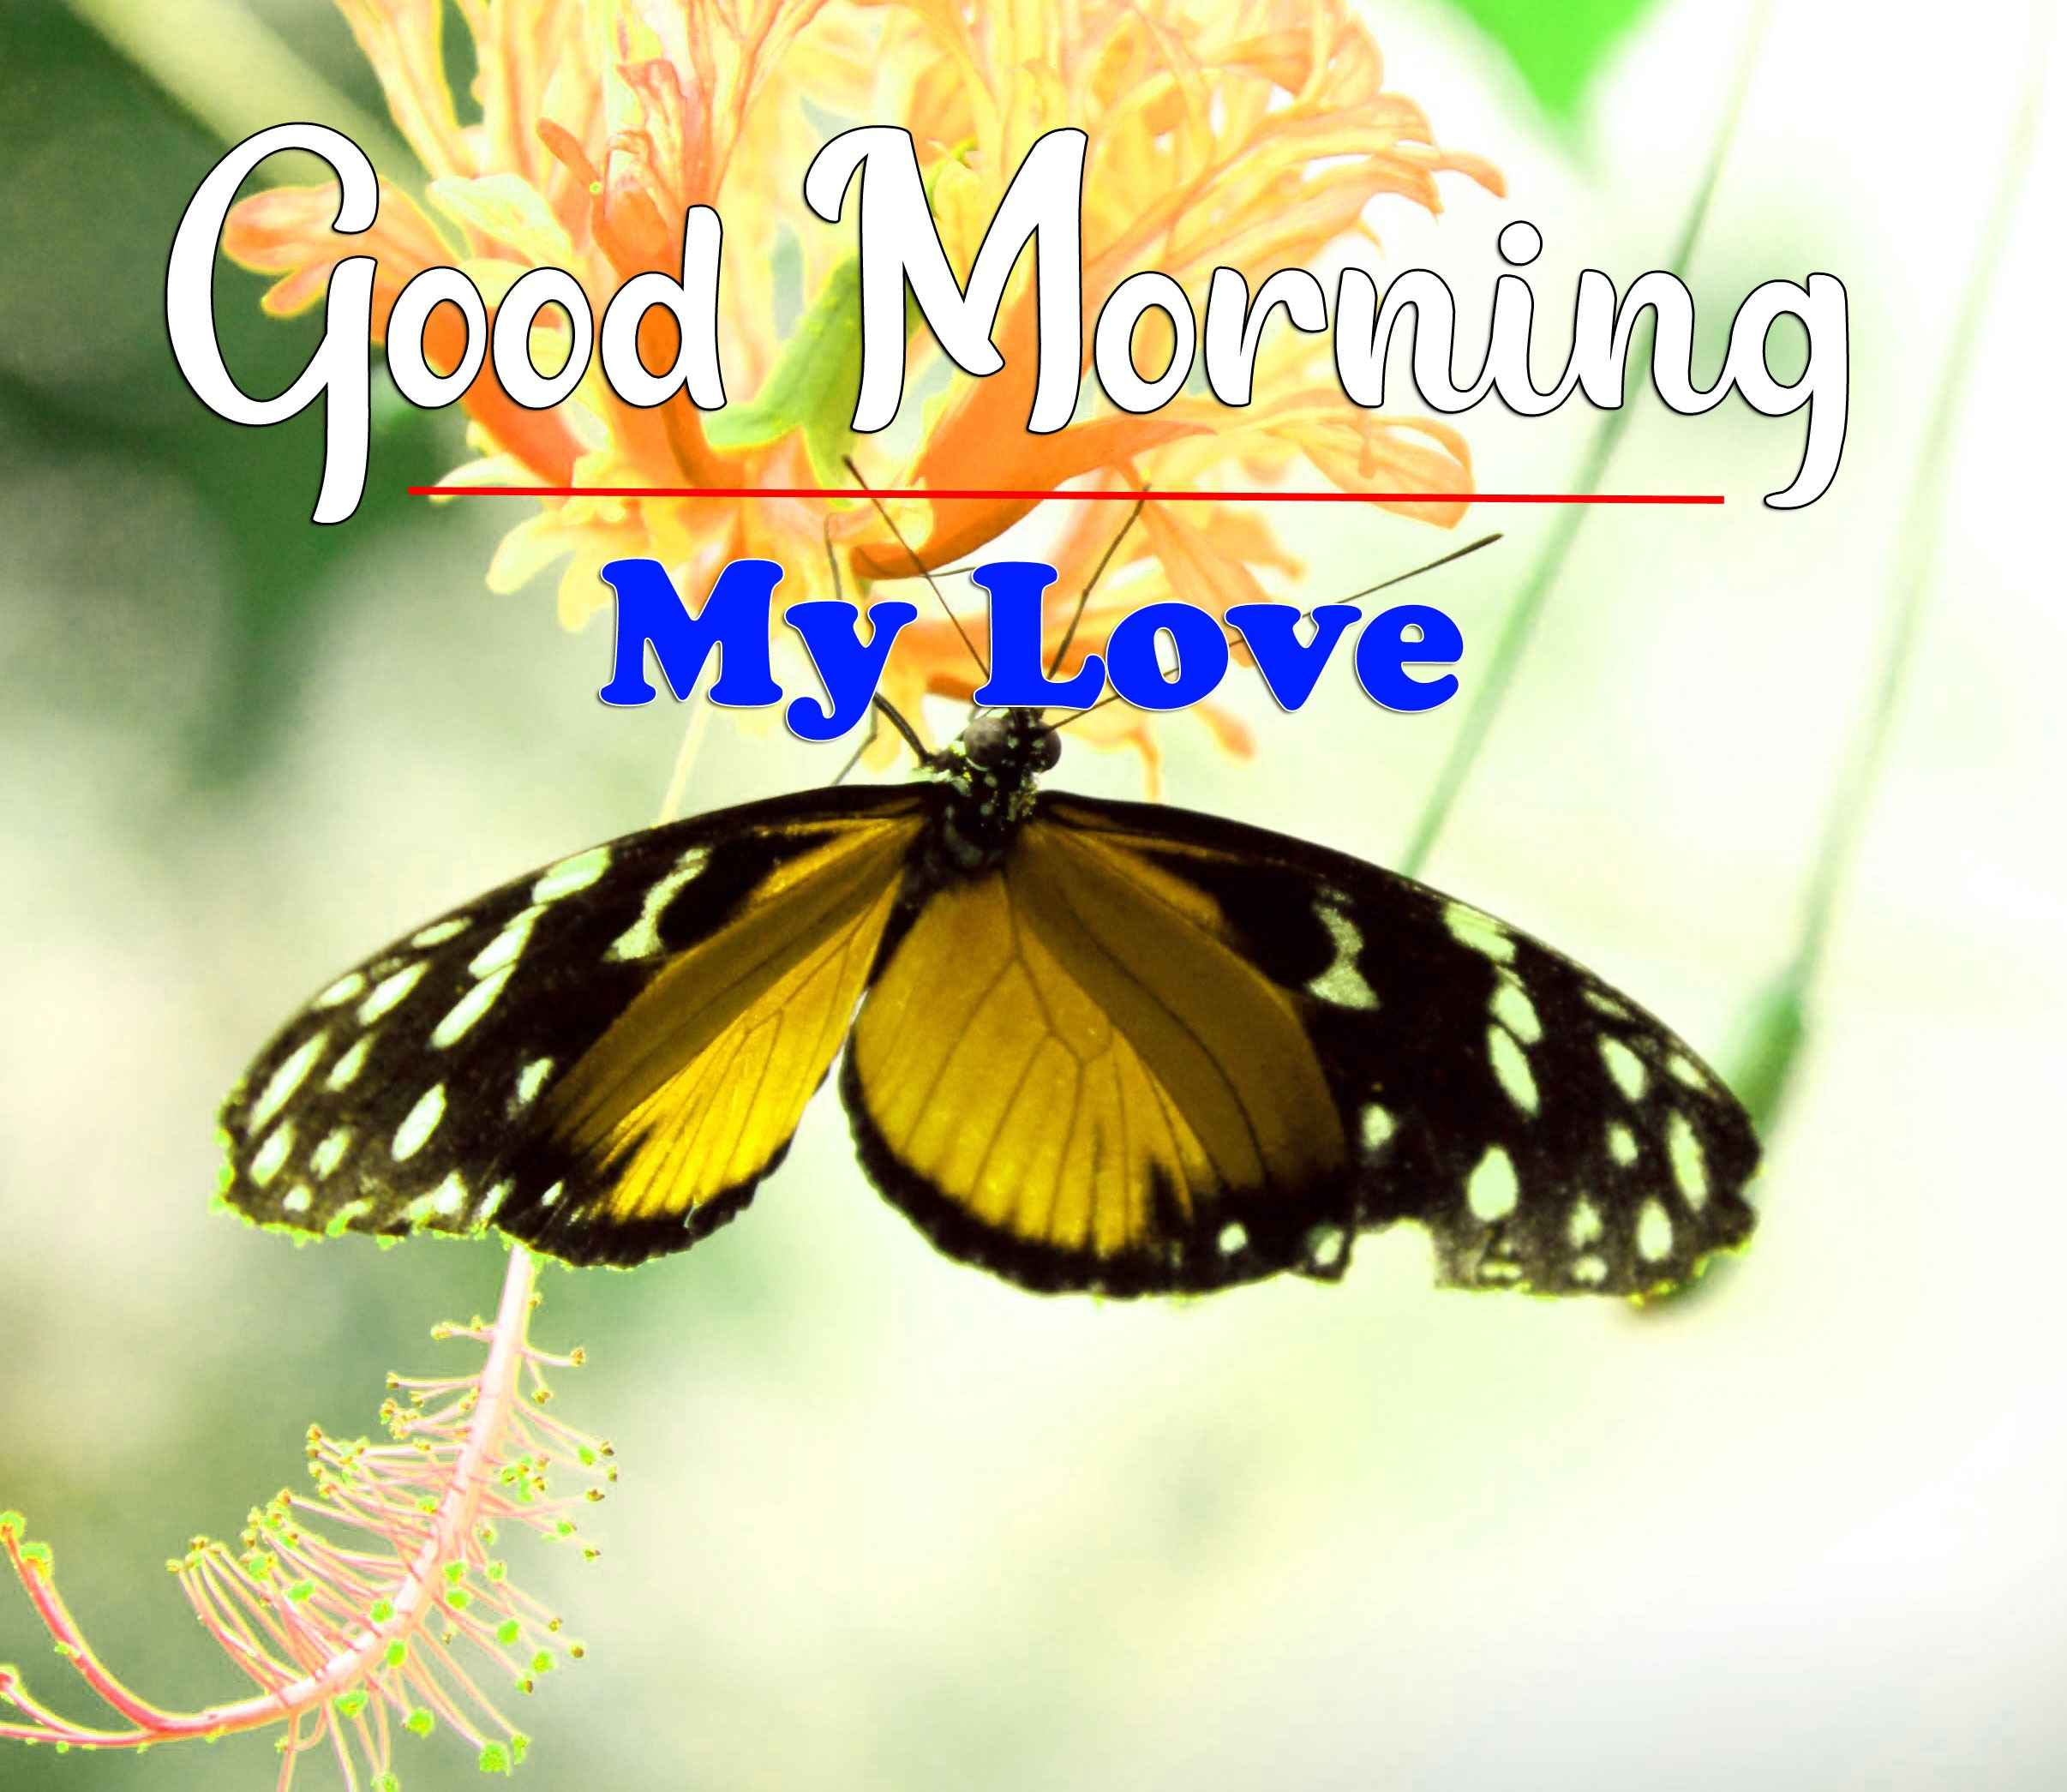 HD Latest Good Morning Photo With Butterfly